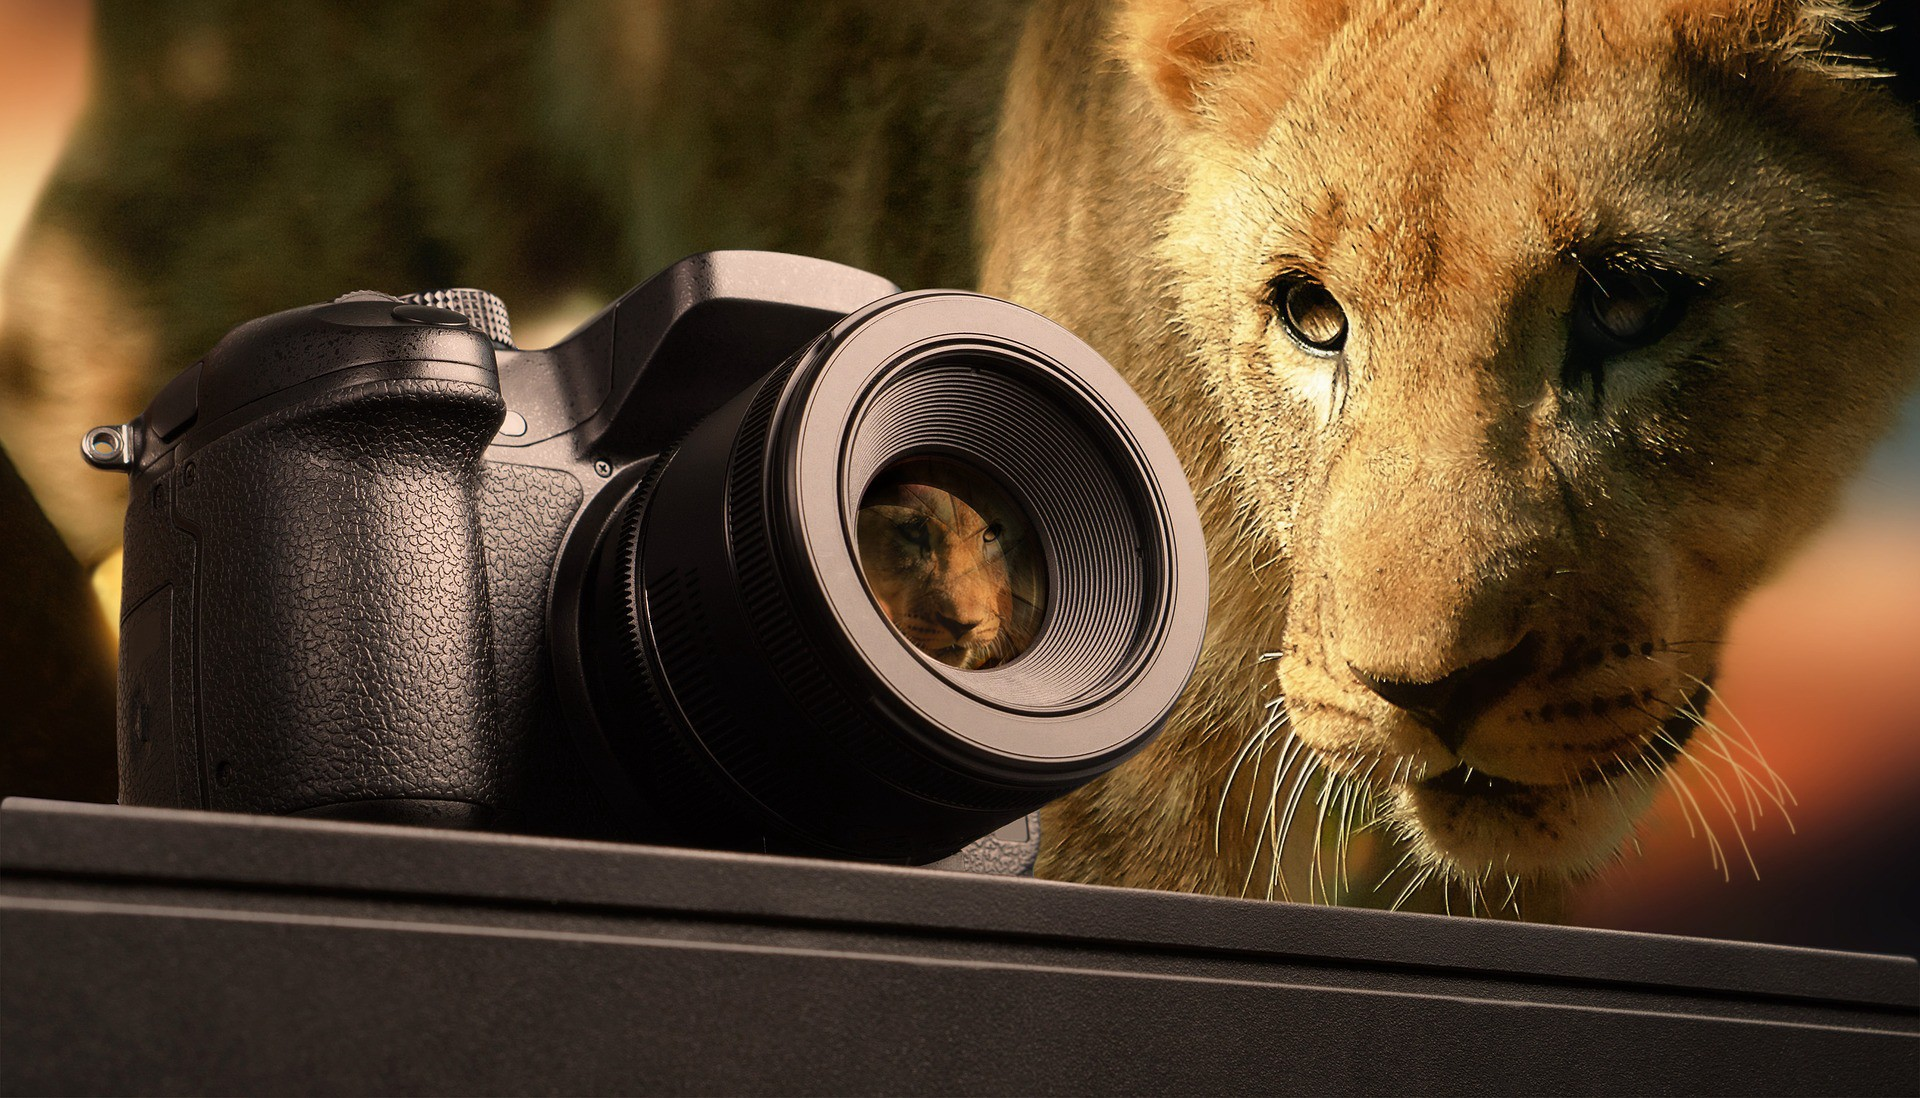 Female lion looking at a camera